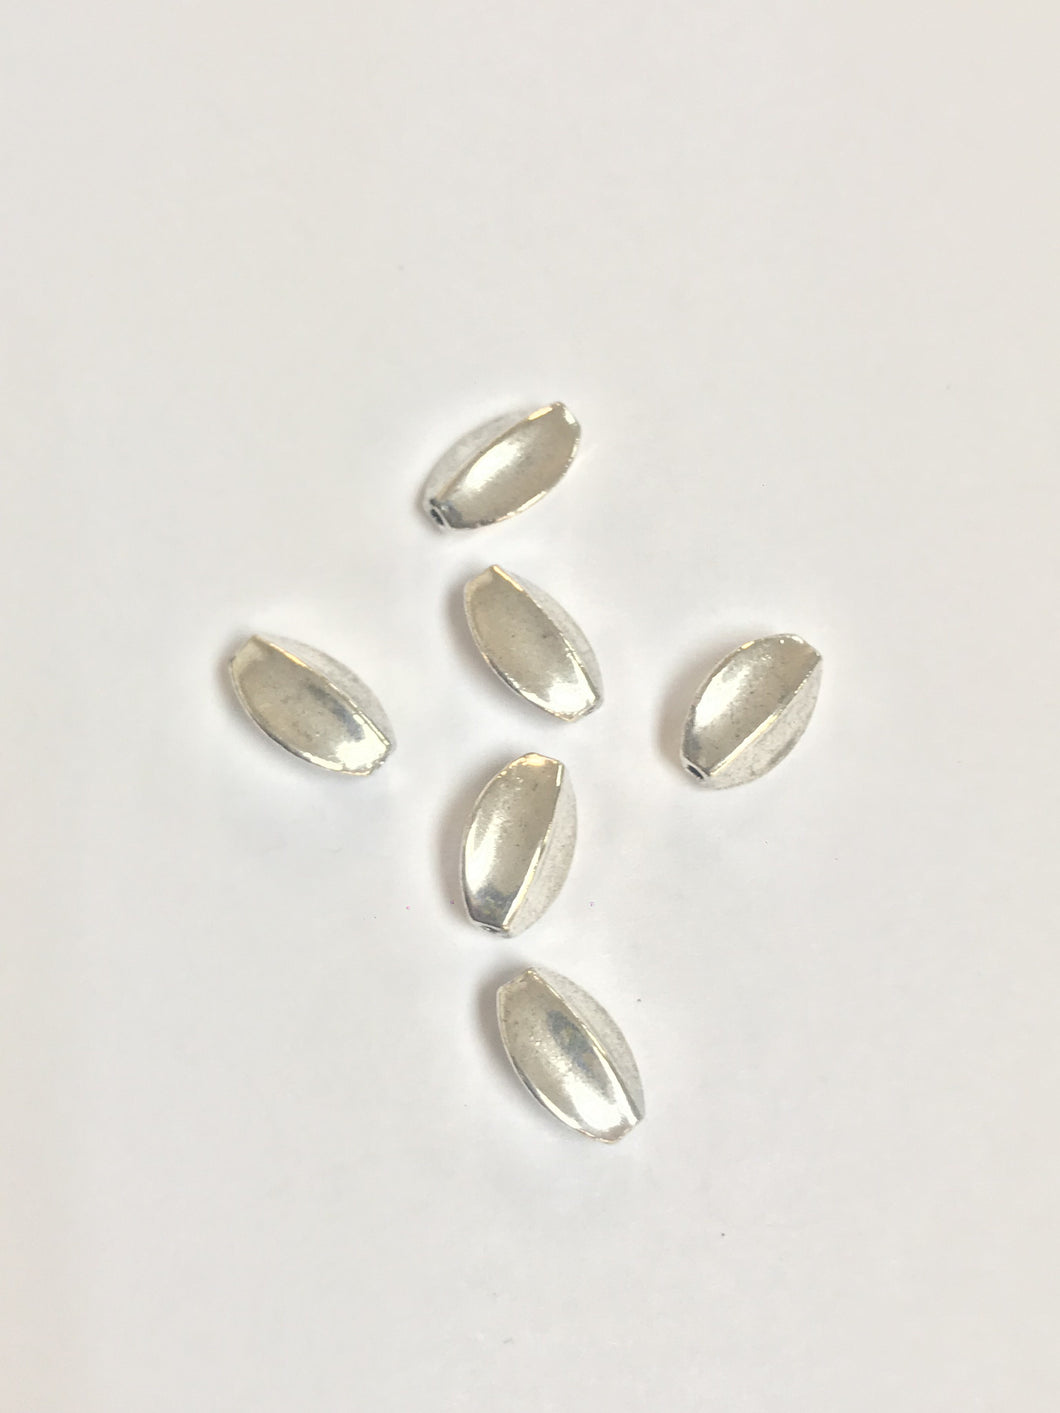 Pewter Beads Ridged Oval 10mmx7mm